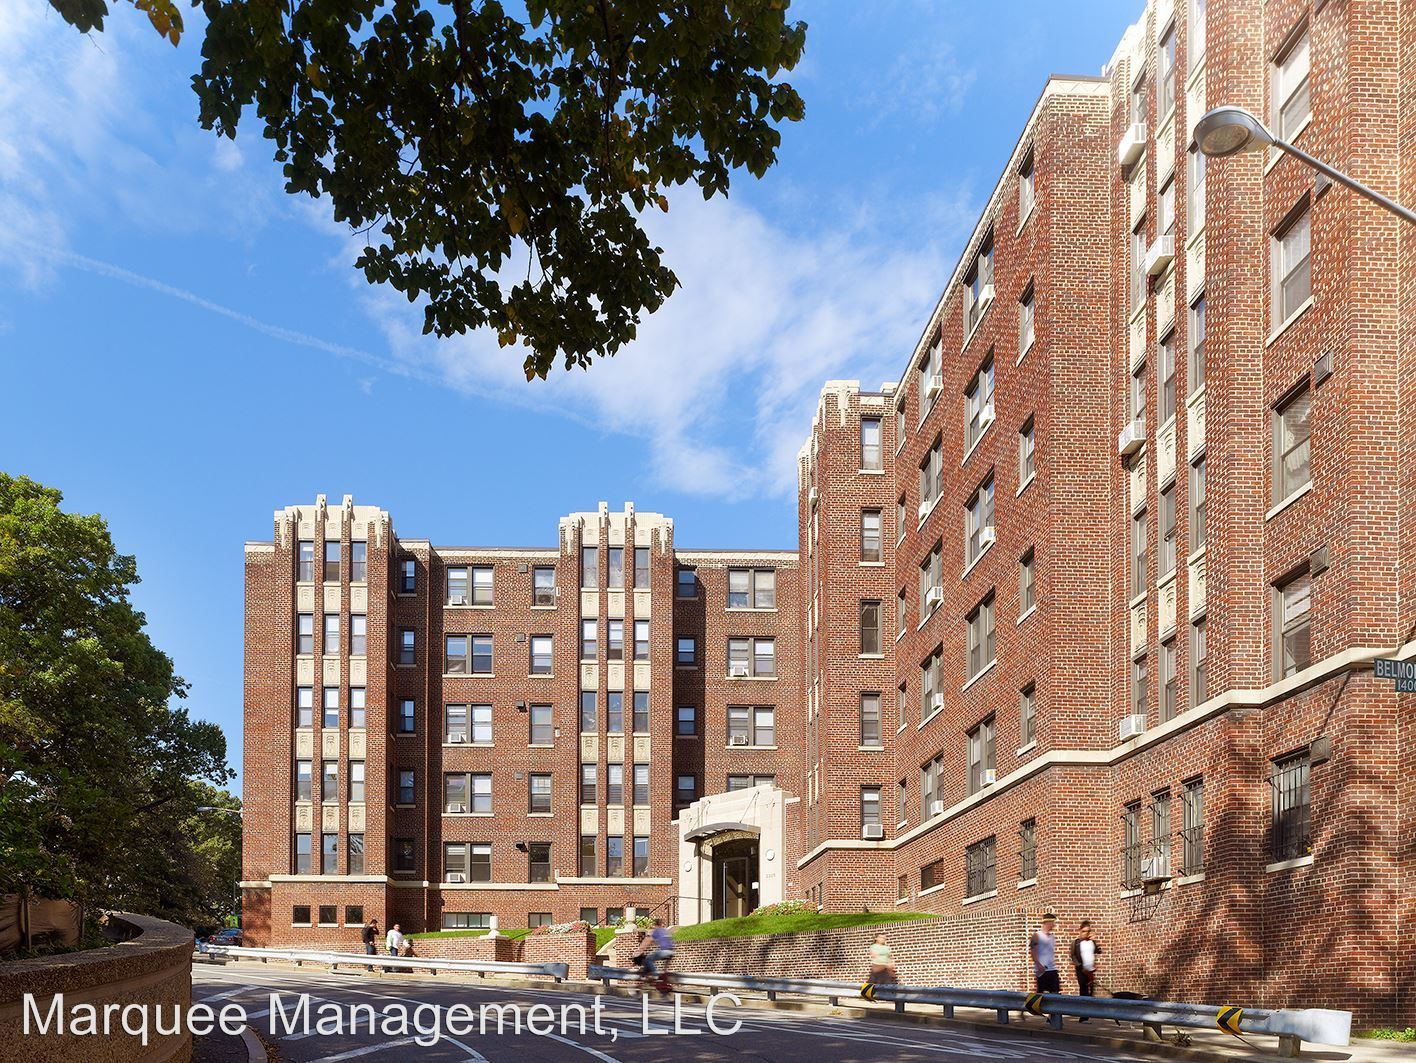 2325 15th Street, NW